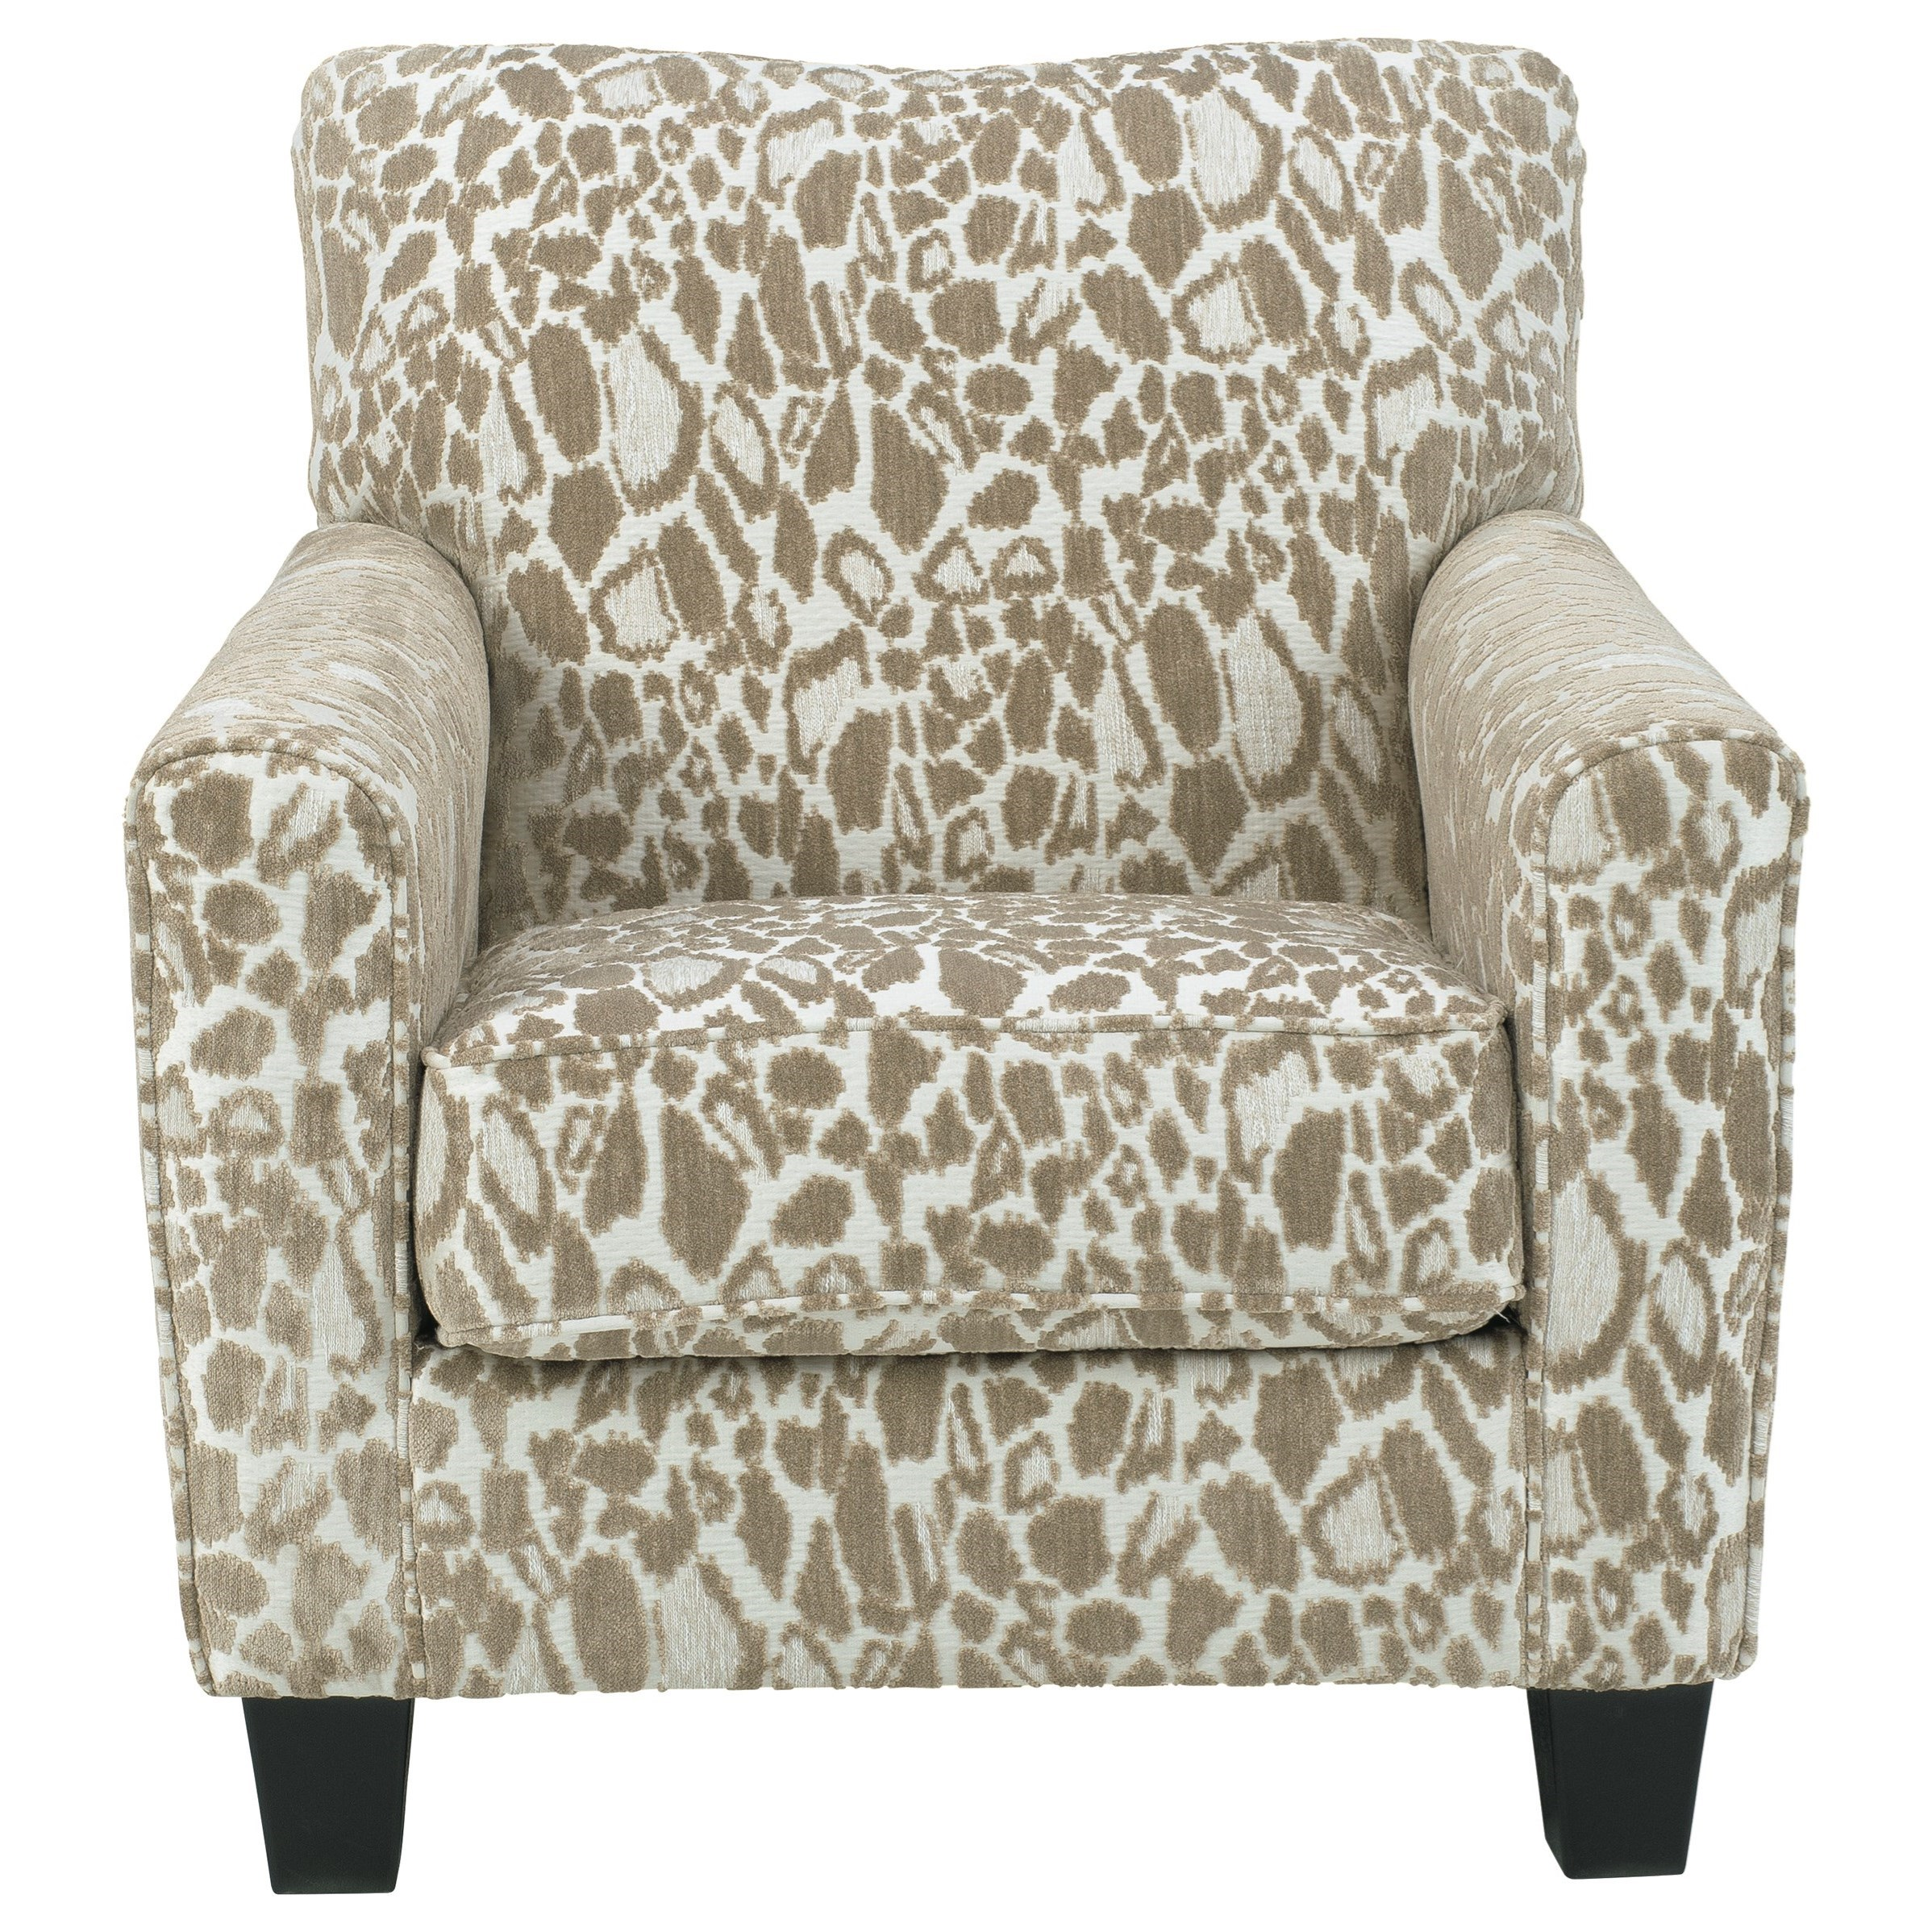 Dovemont Accent Chair by Signature at Walker's Furniture